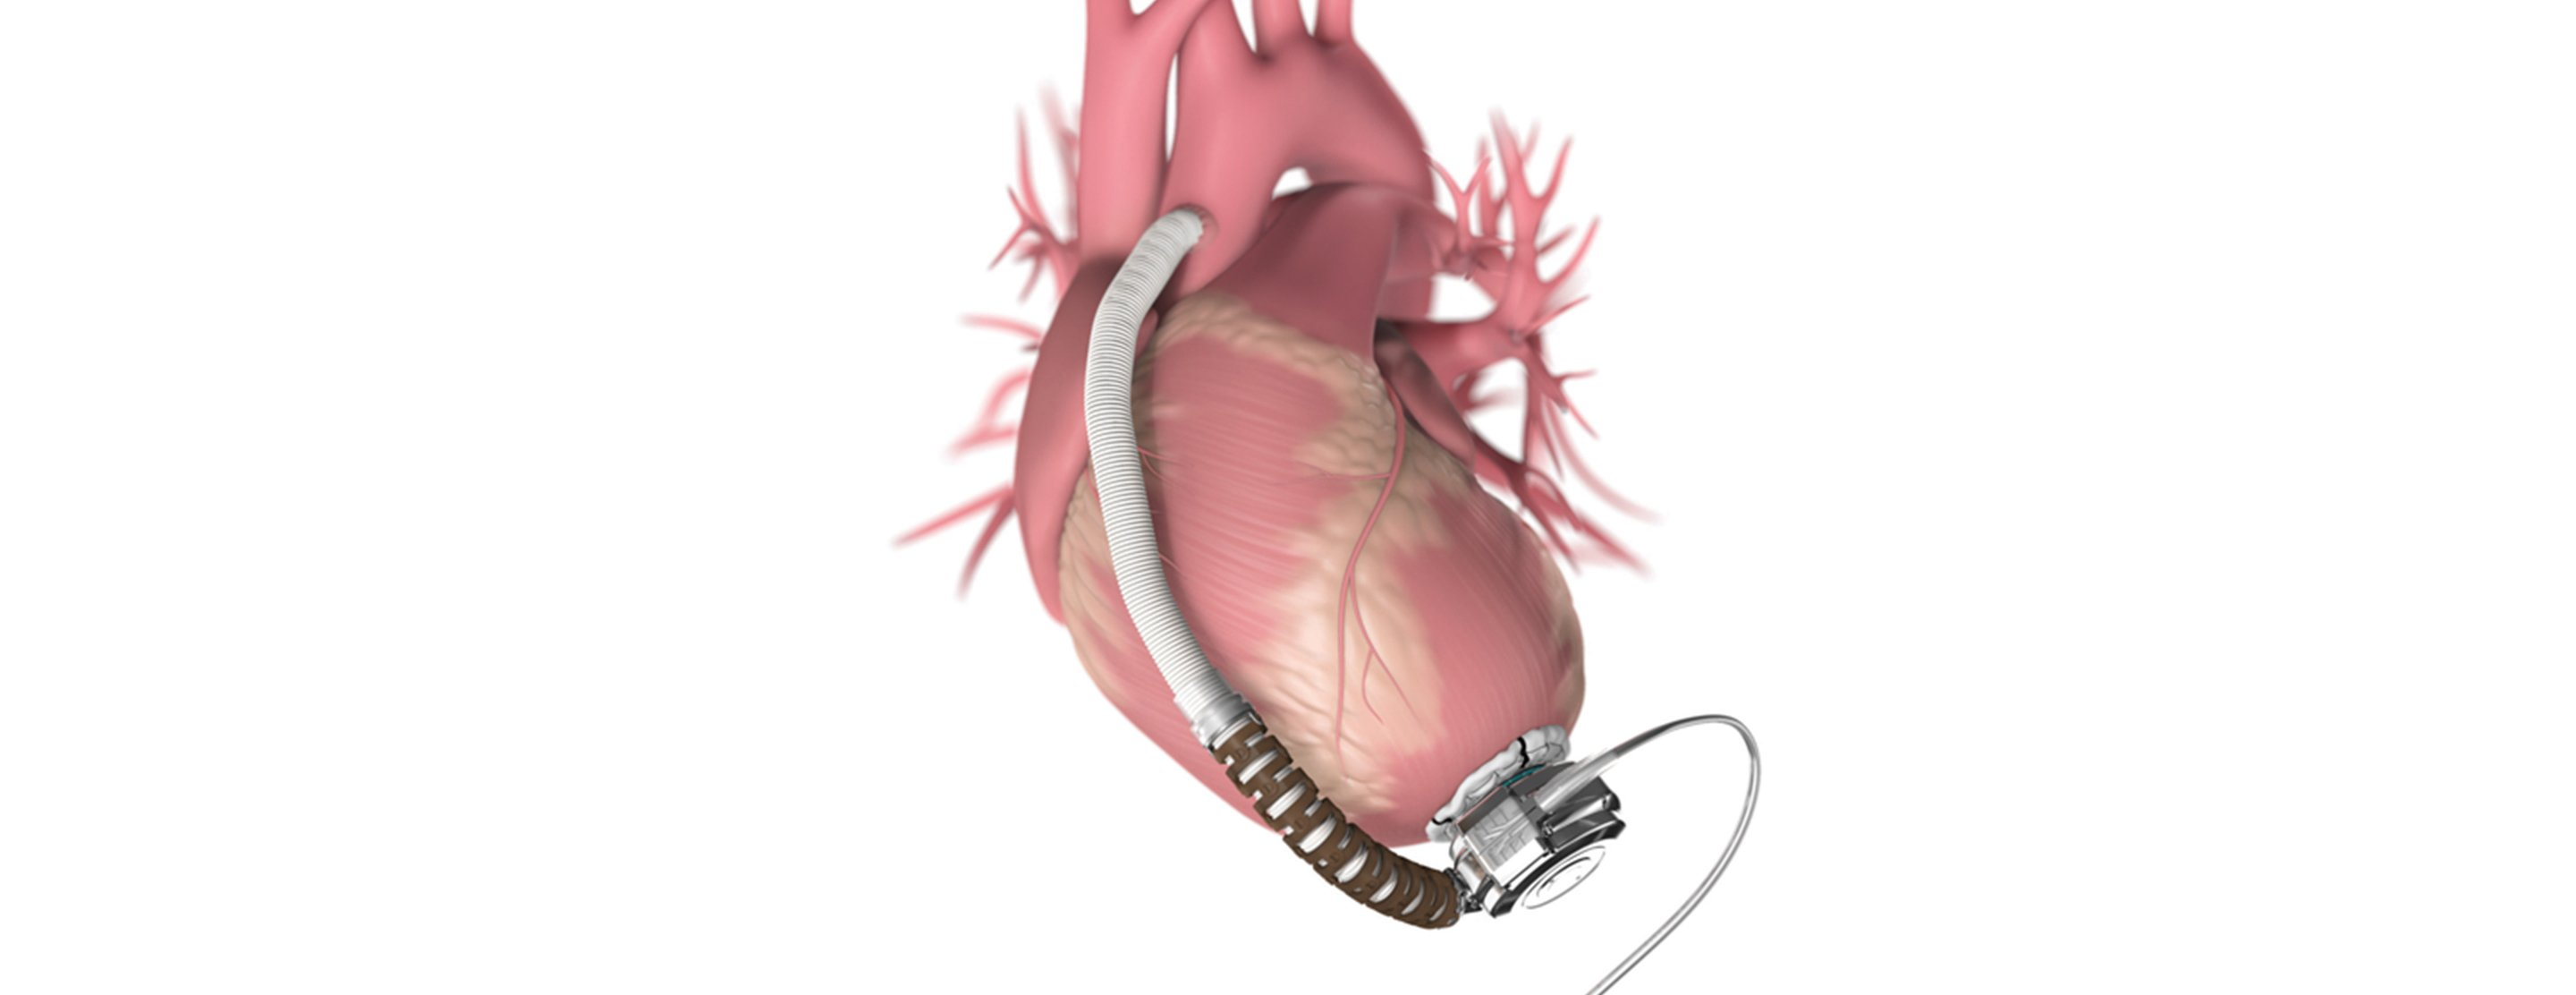 Ventricular Assist Device (VAD) | Conditions & Treatments | UCSF ...